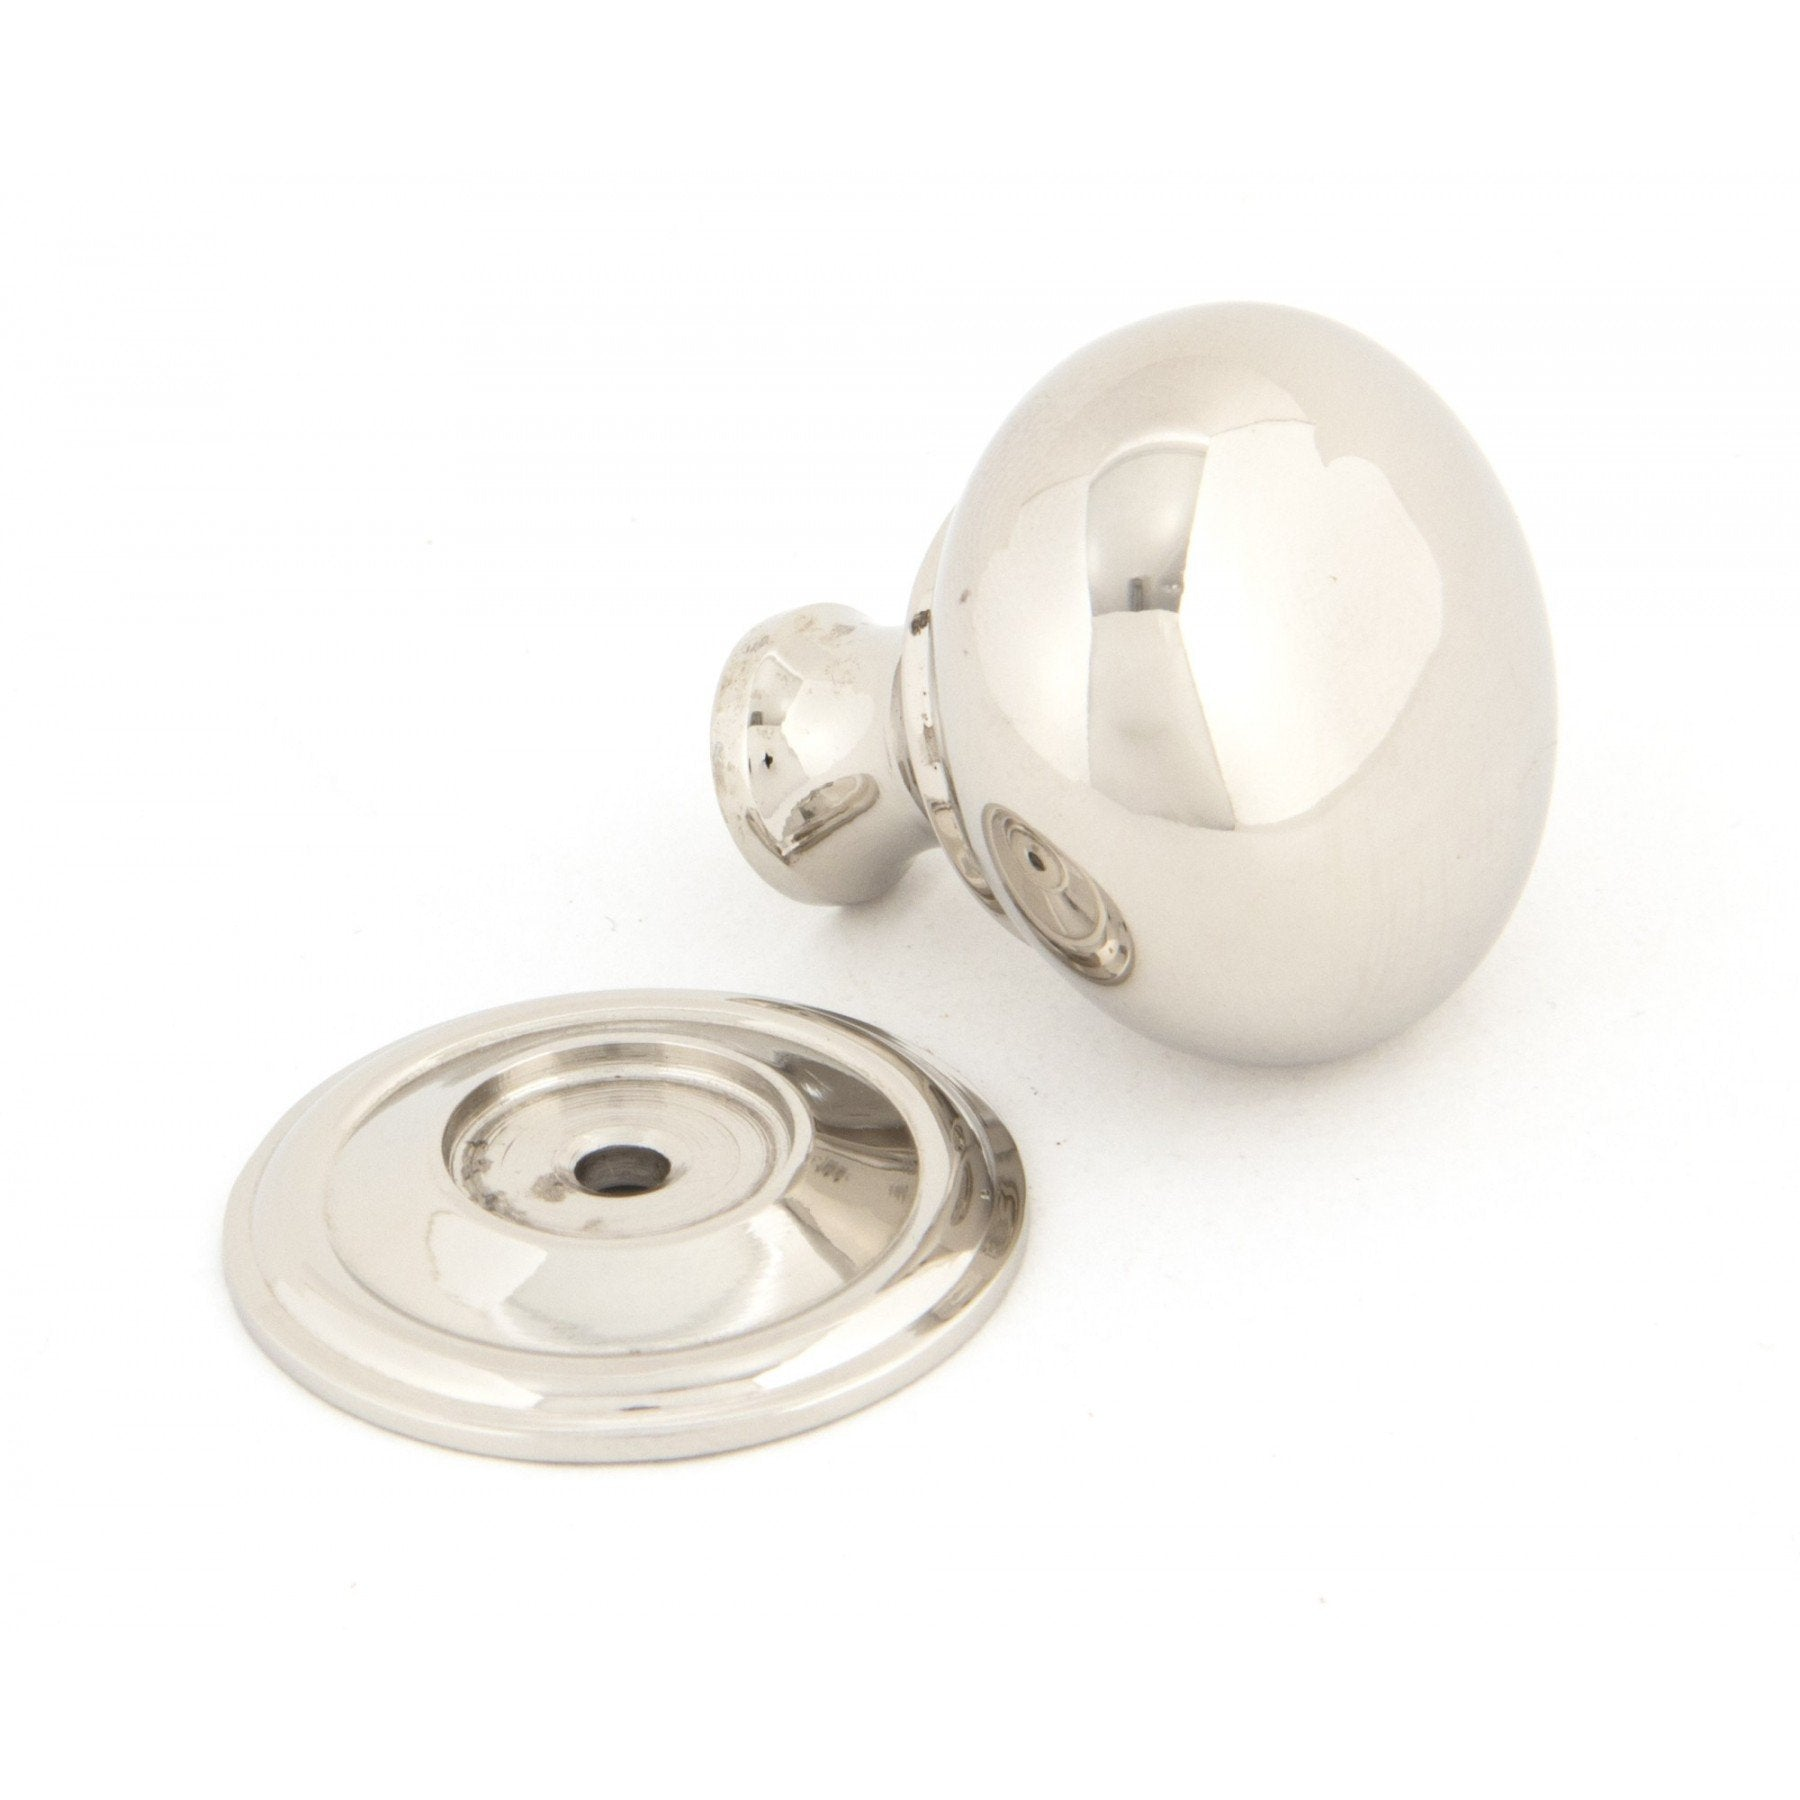 From the Anvil Polished Nickel Mushroom Cabinet Knob - Small